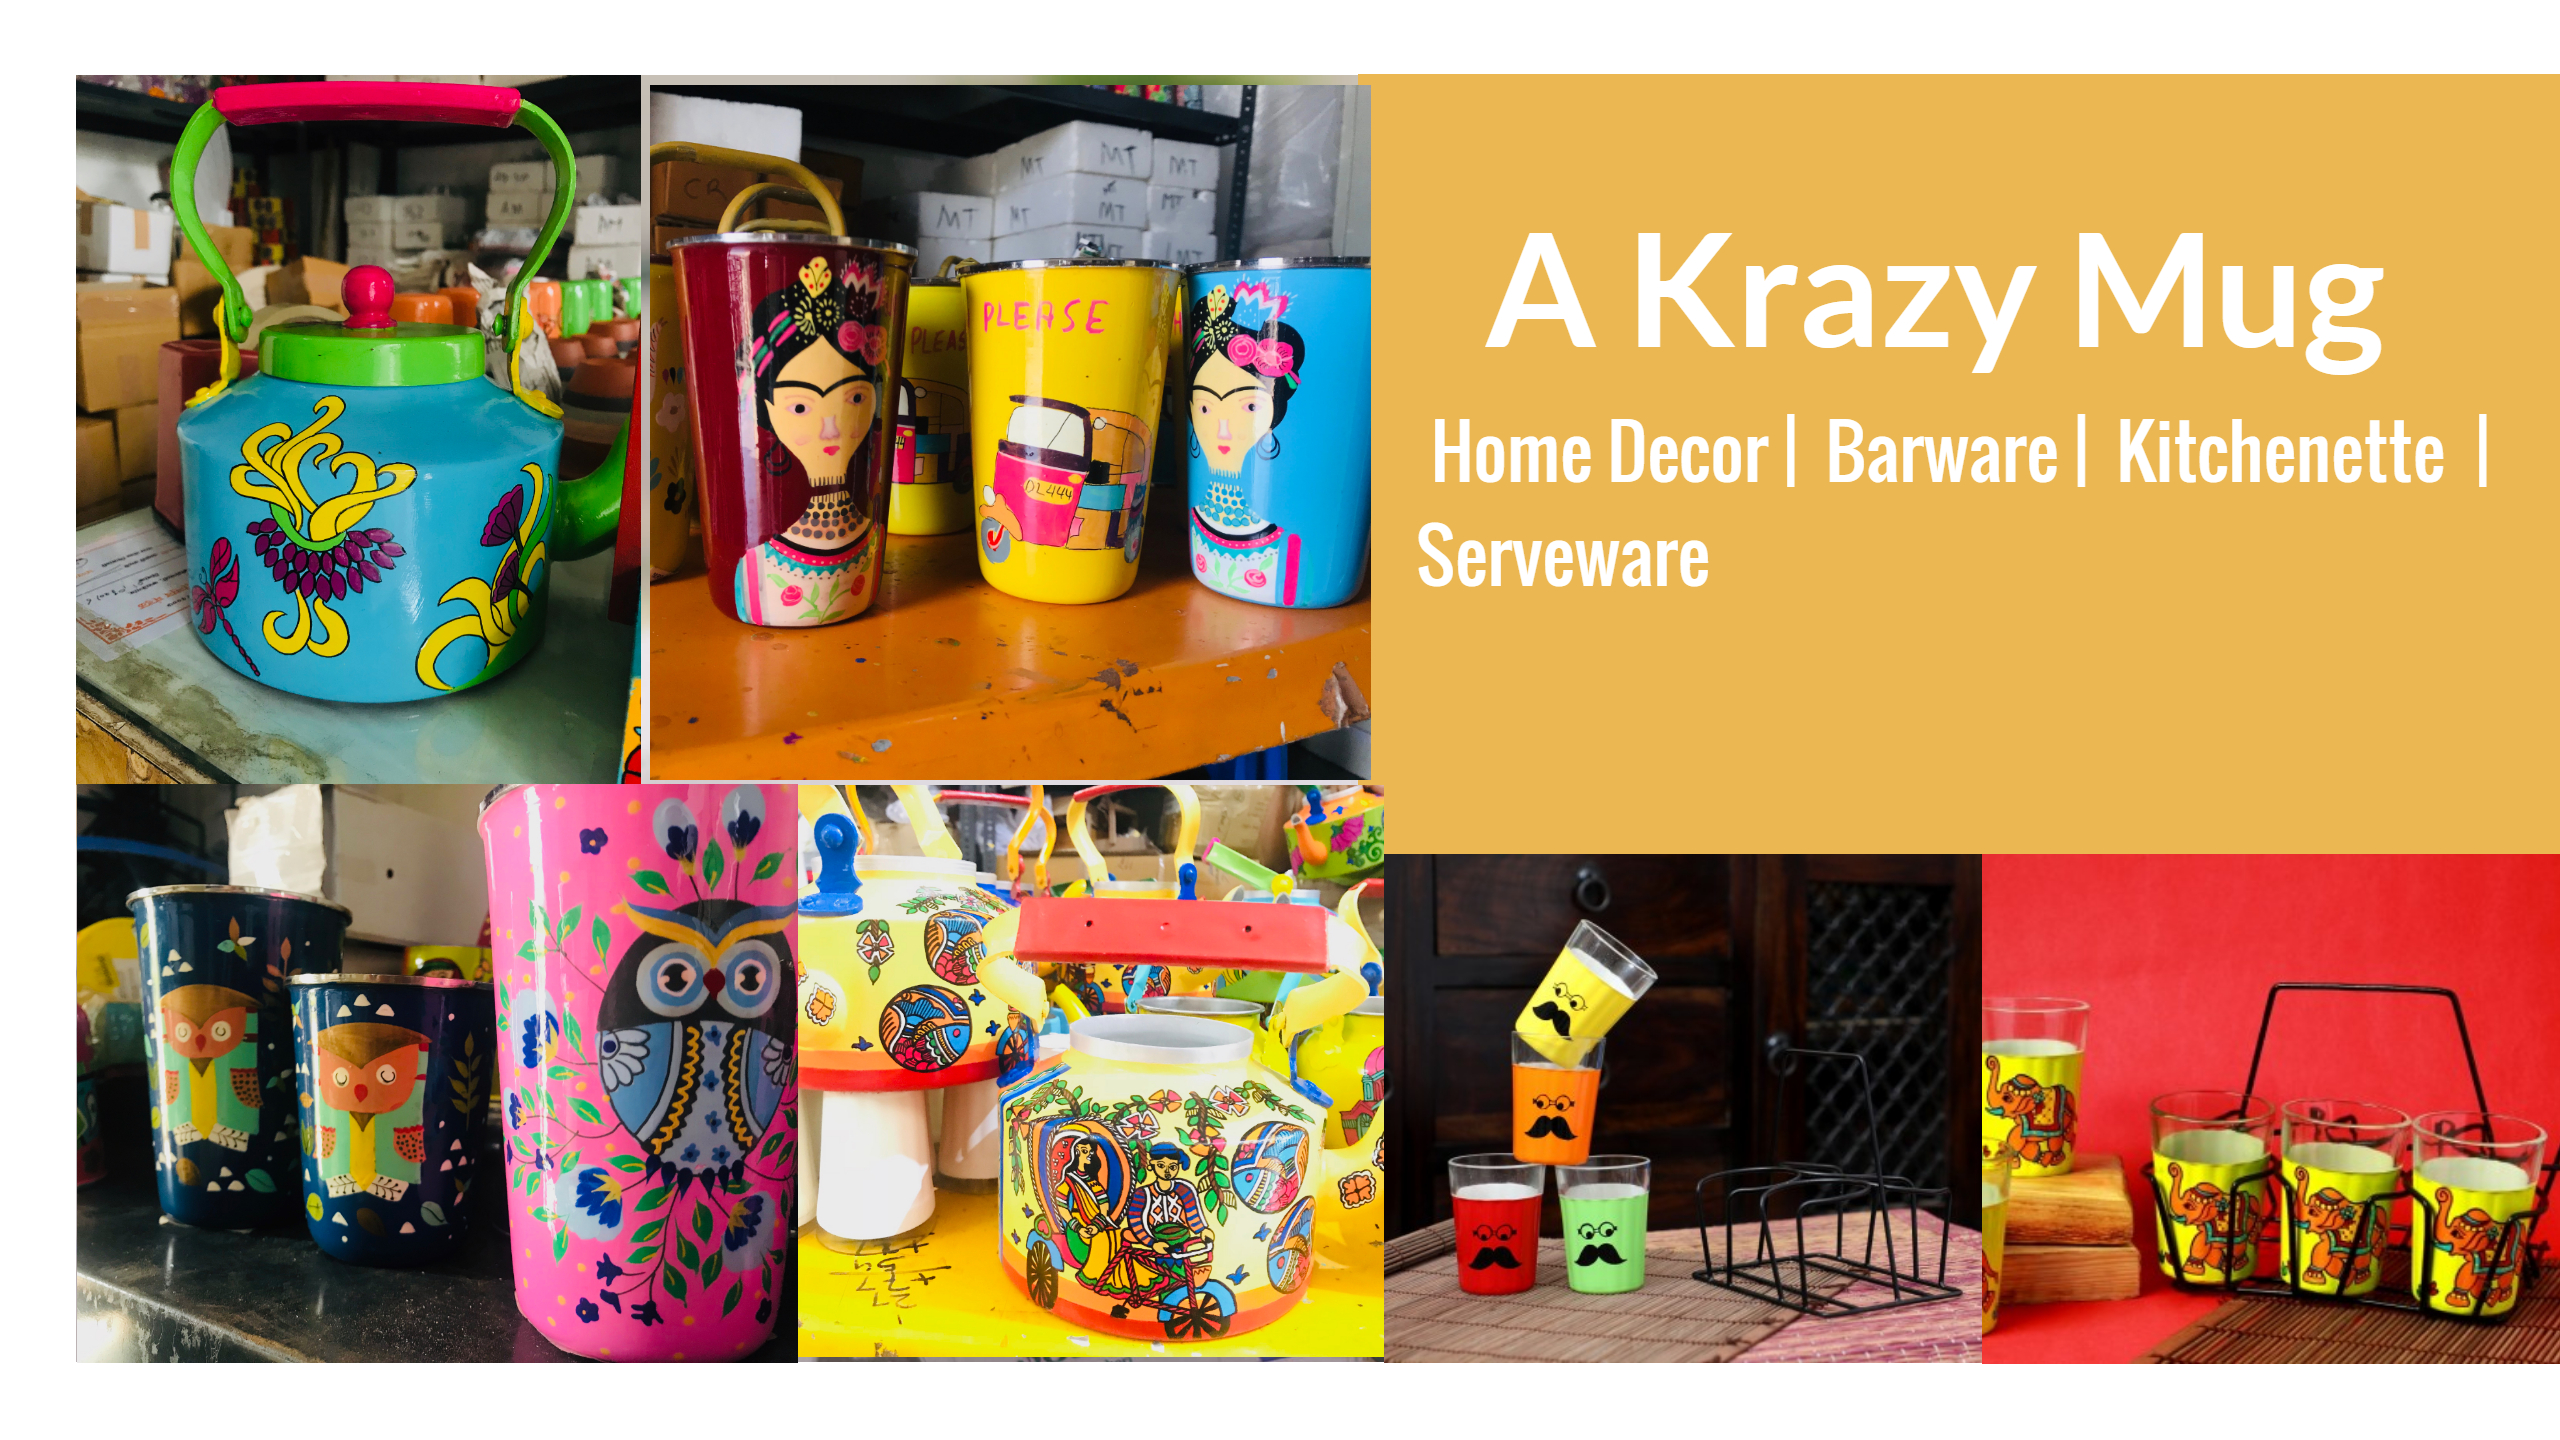 #Top3 Genre of Products - Go To Buy's This Diwali | Enlighten Your Diwali By The Perfect Home Decor and Serveware Accessories | Only By A Krazy Mug